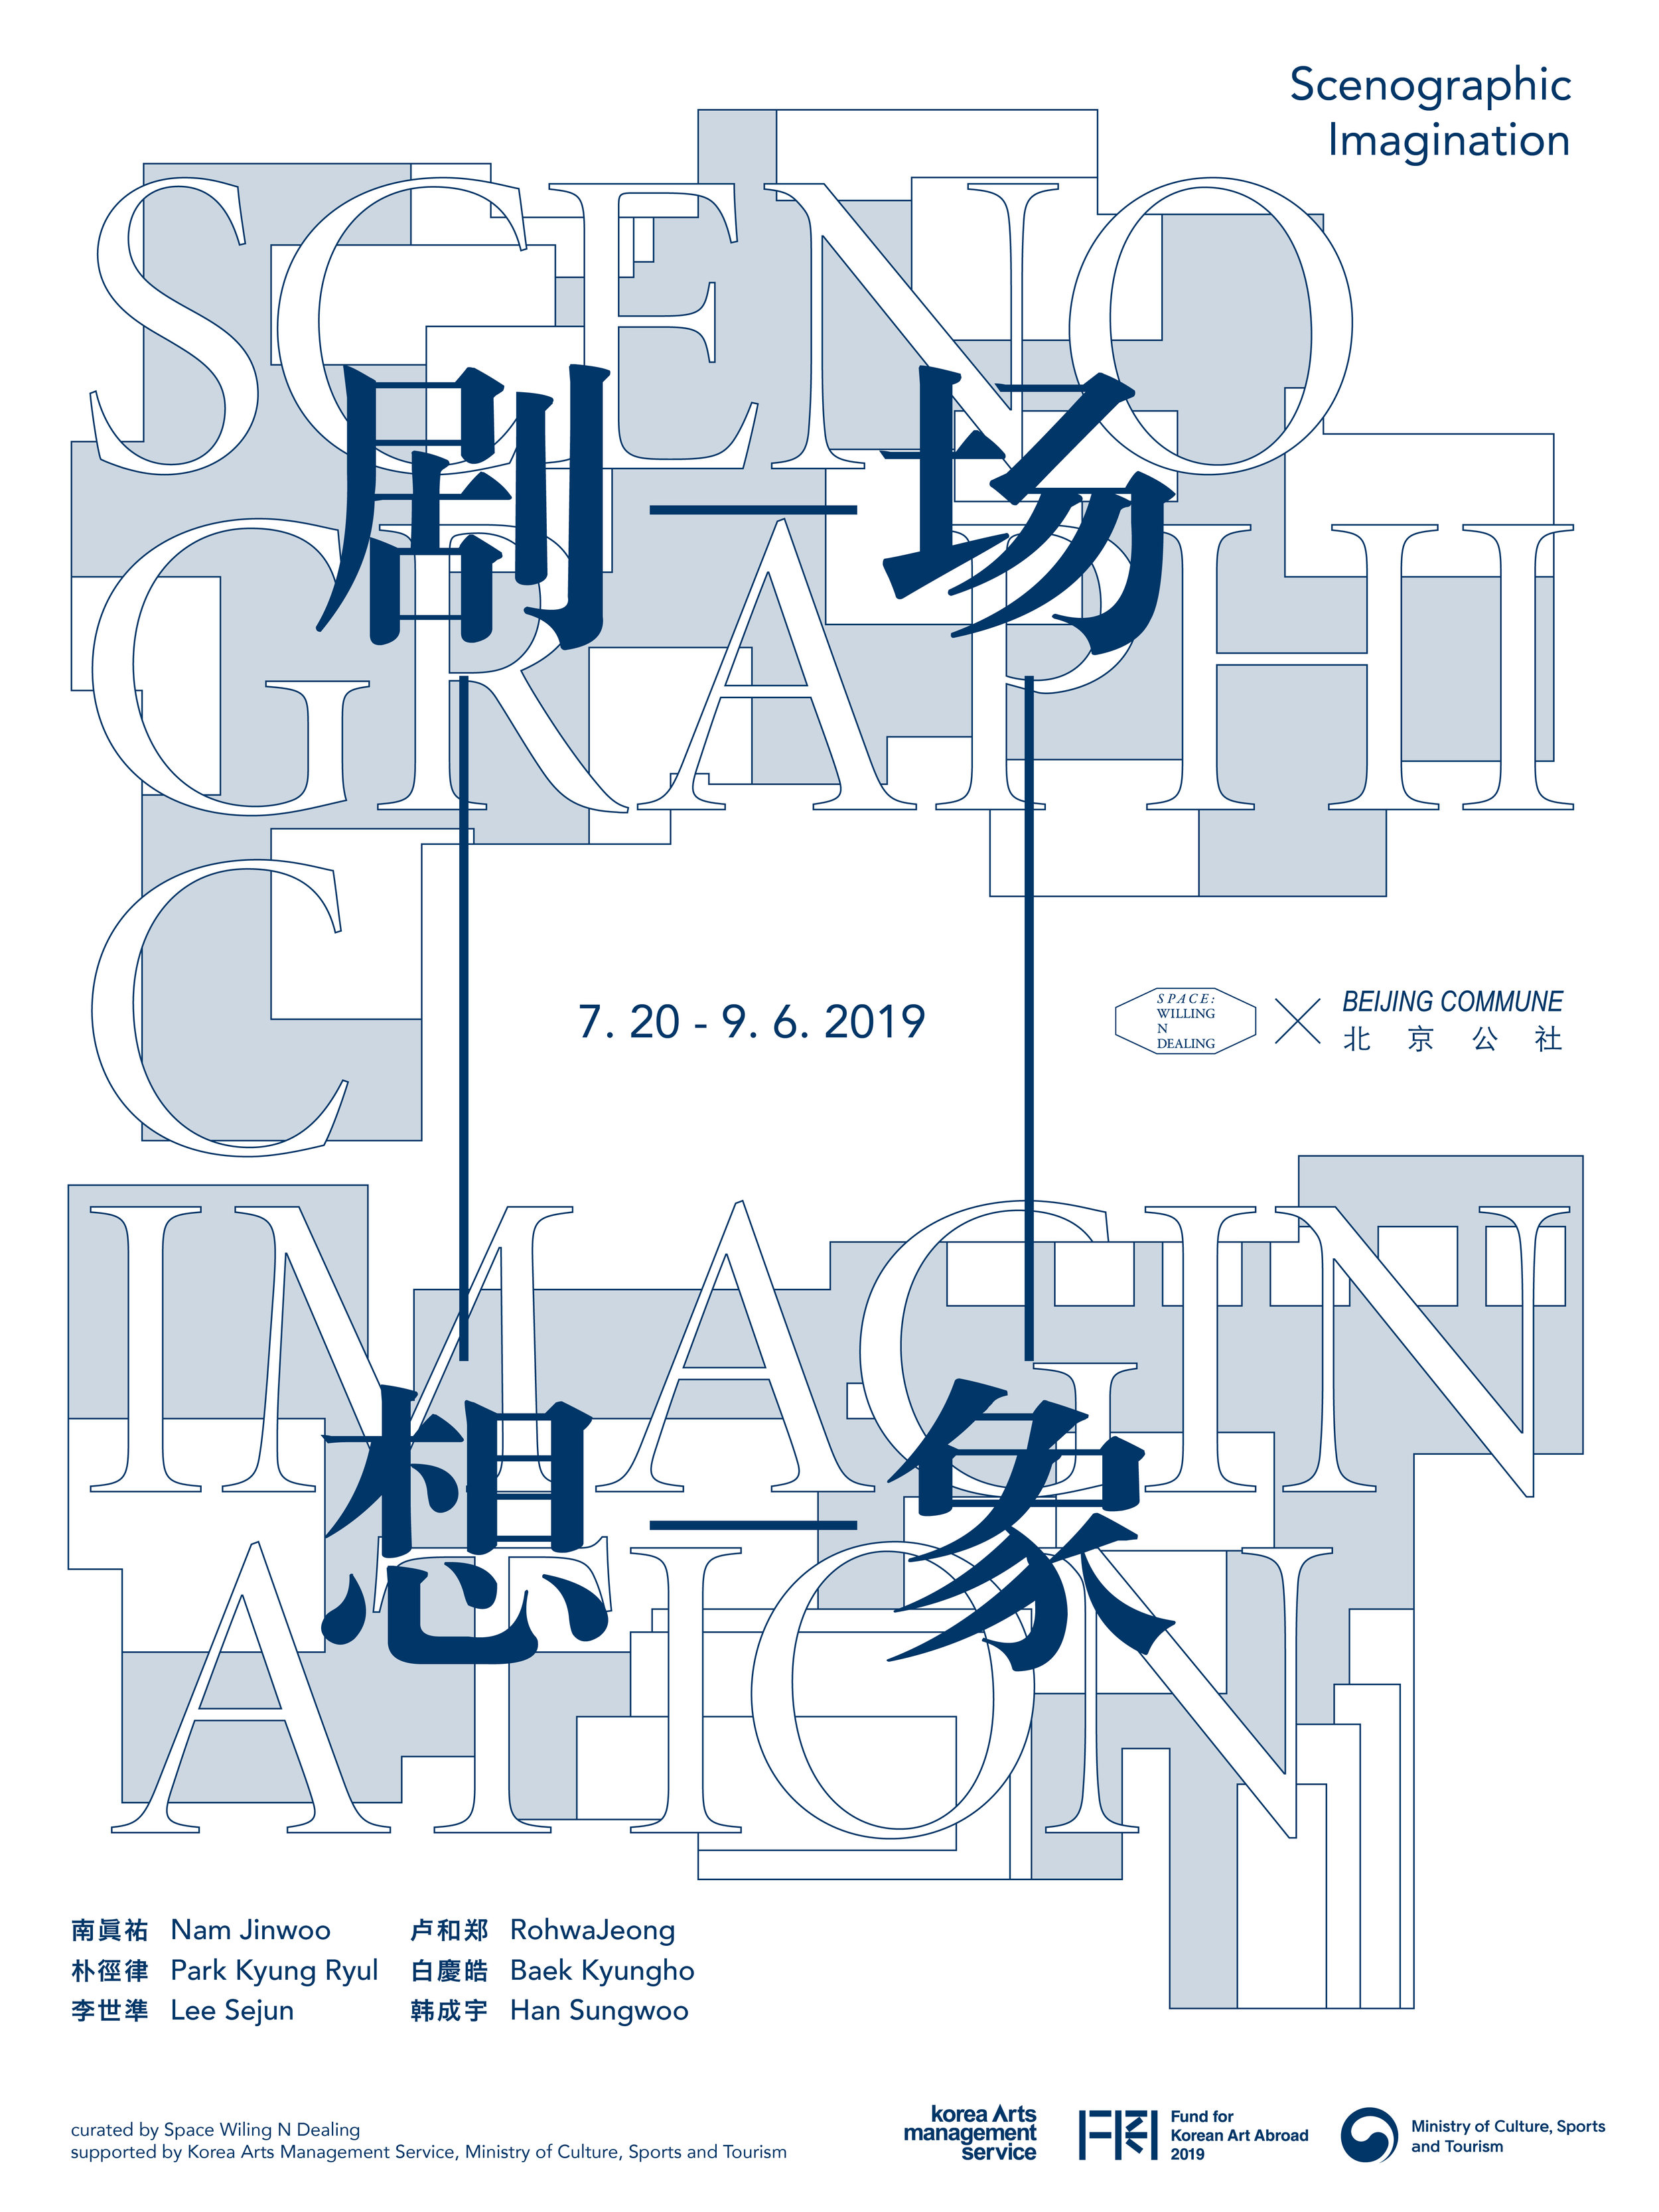 - Scenographic Imagination(Curated by Space Willing N Dealing)BEIJING COMMUNE20 July -6 September 2019